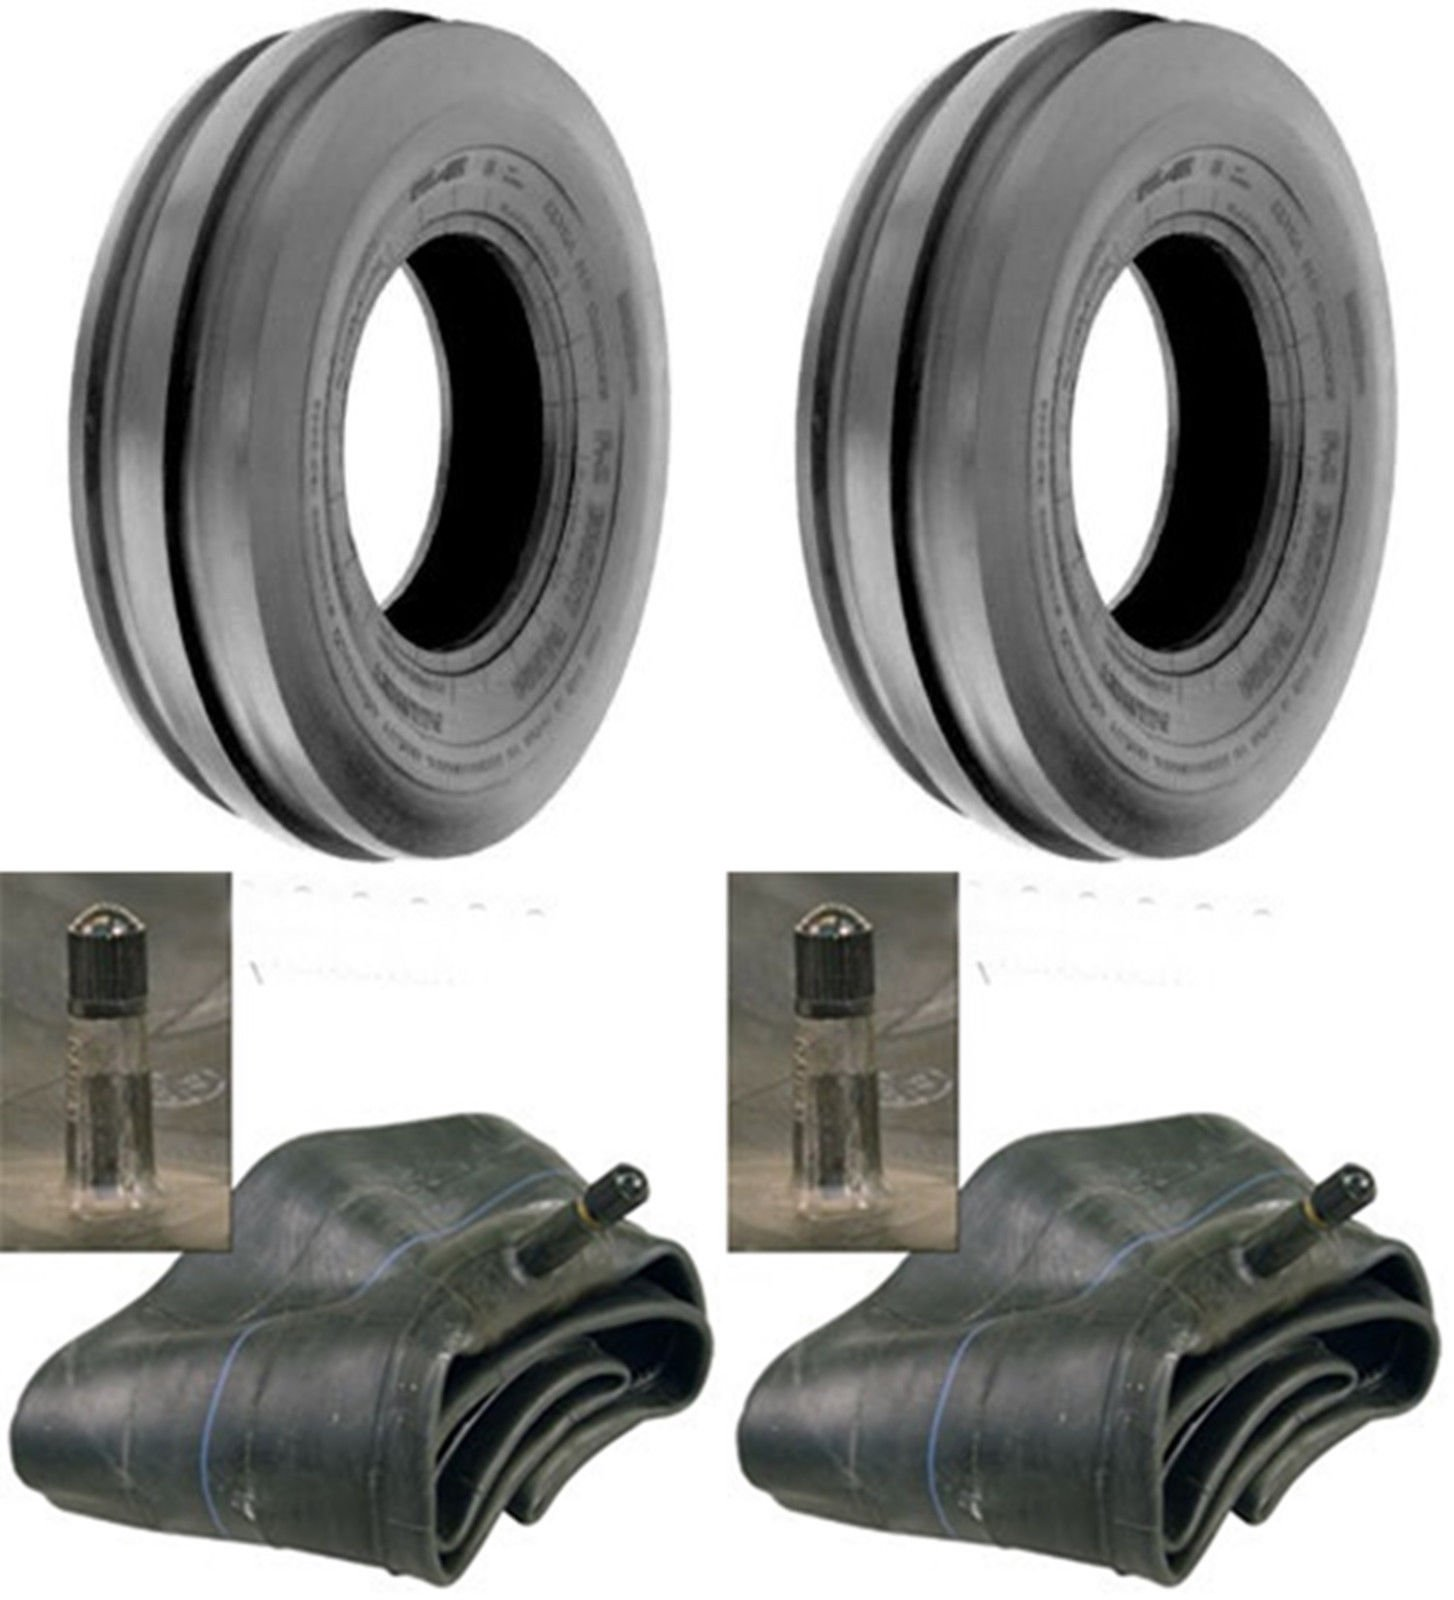 LOT OF TWO (2) 6.00-16 6.00X16 600-16 Tri Rib (3 Rib) F-2 Tires with Tubes HEAVY DUTY 8 PLY RATED